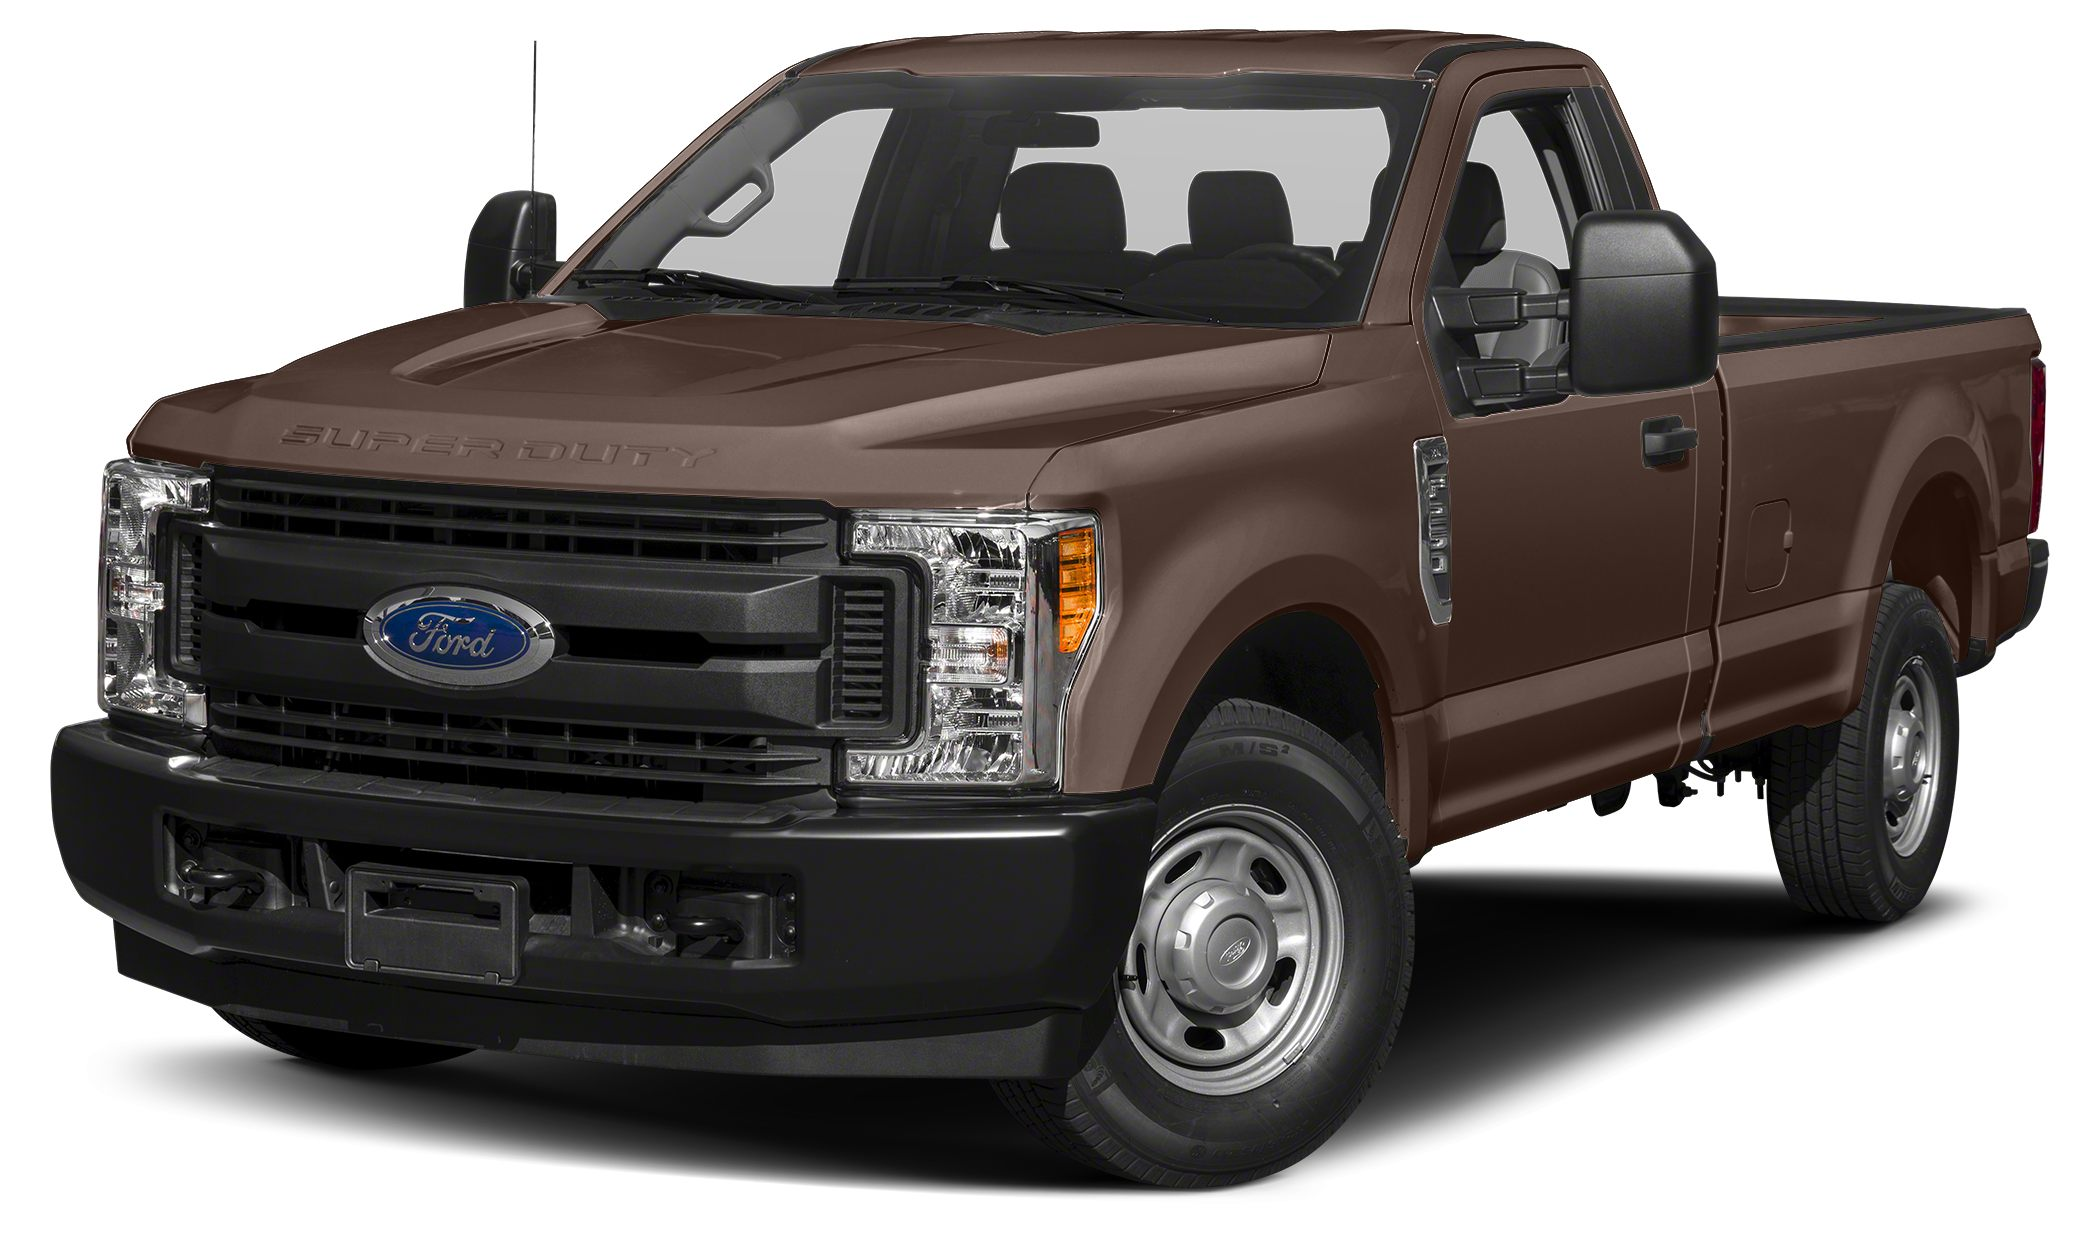 Ford 2500 photo - 8